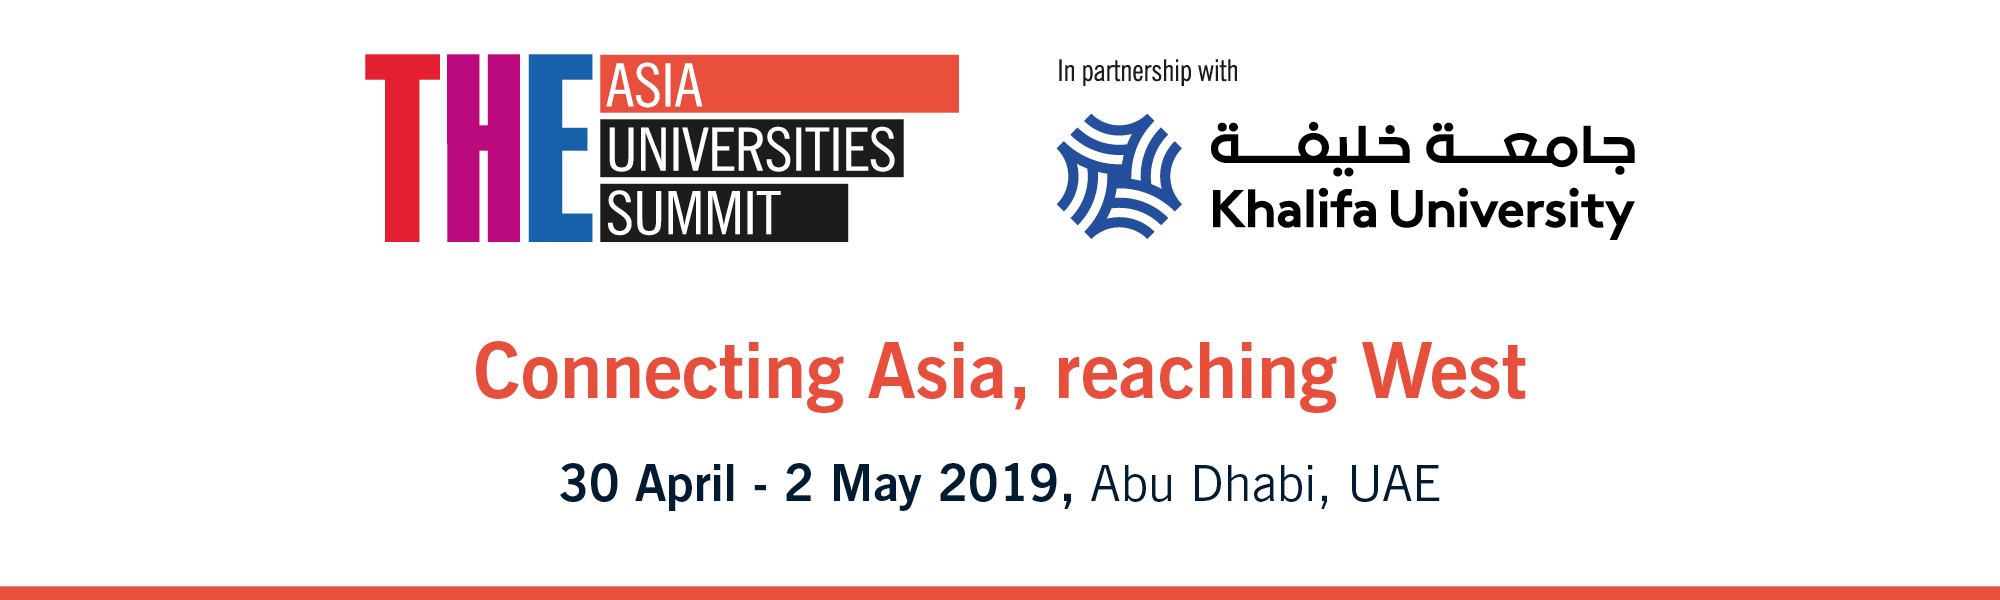 THE Asia Universities Summit 2019